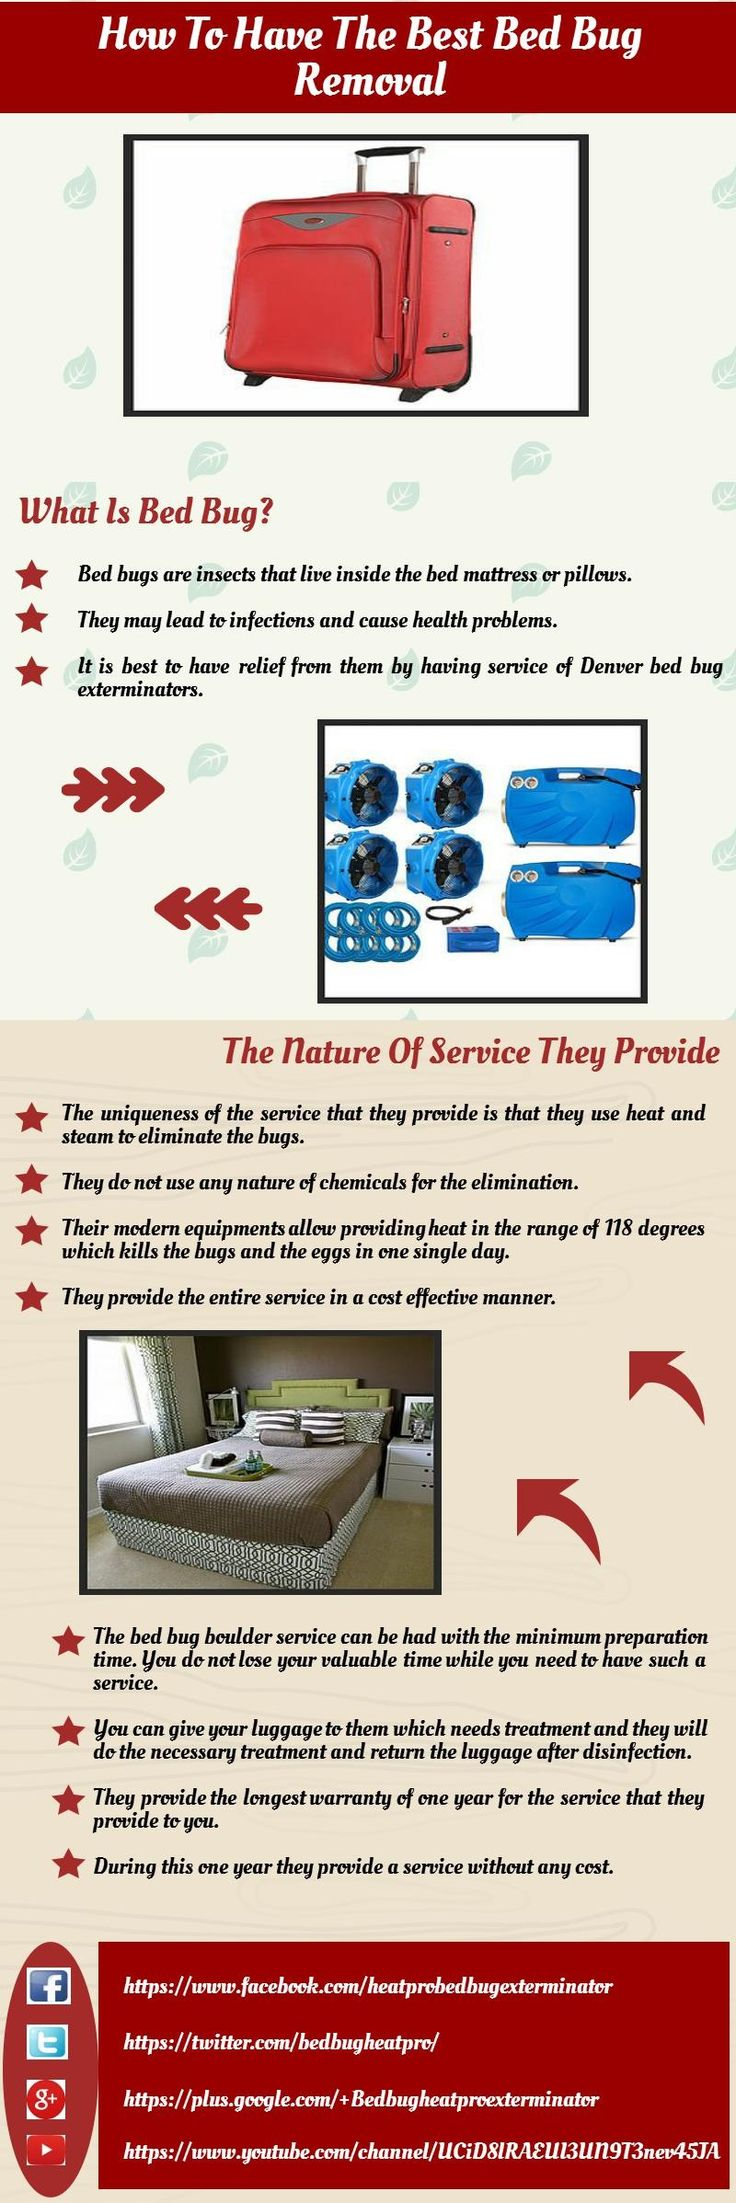 florida bugs boca bed bedbugs service delray pest termite control work services bedbug and removal bug